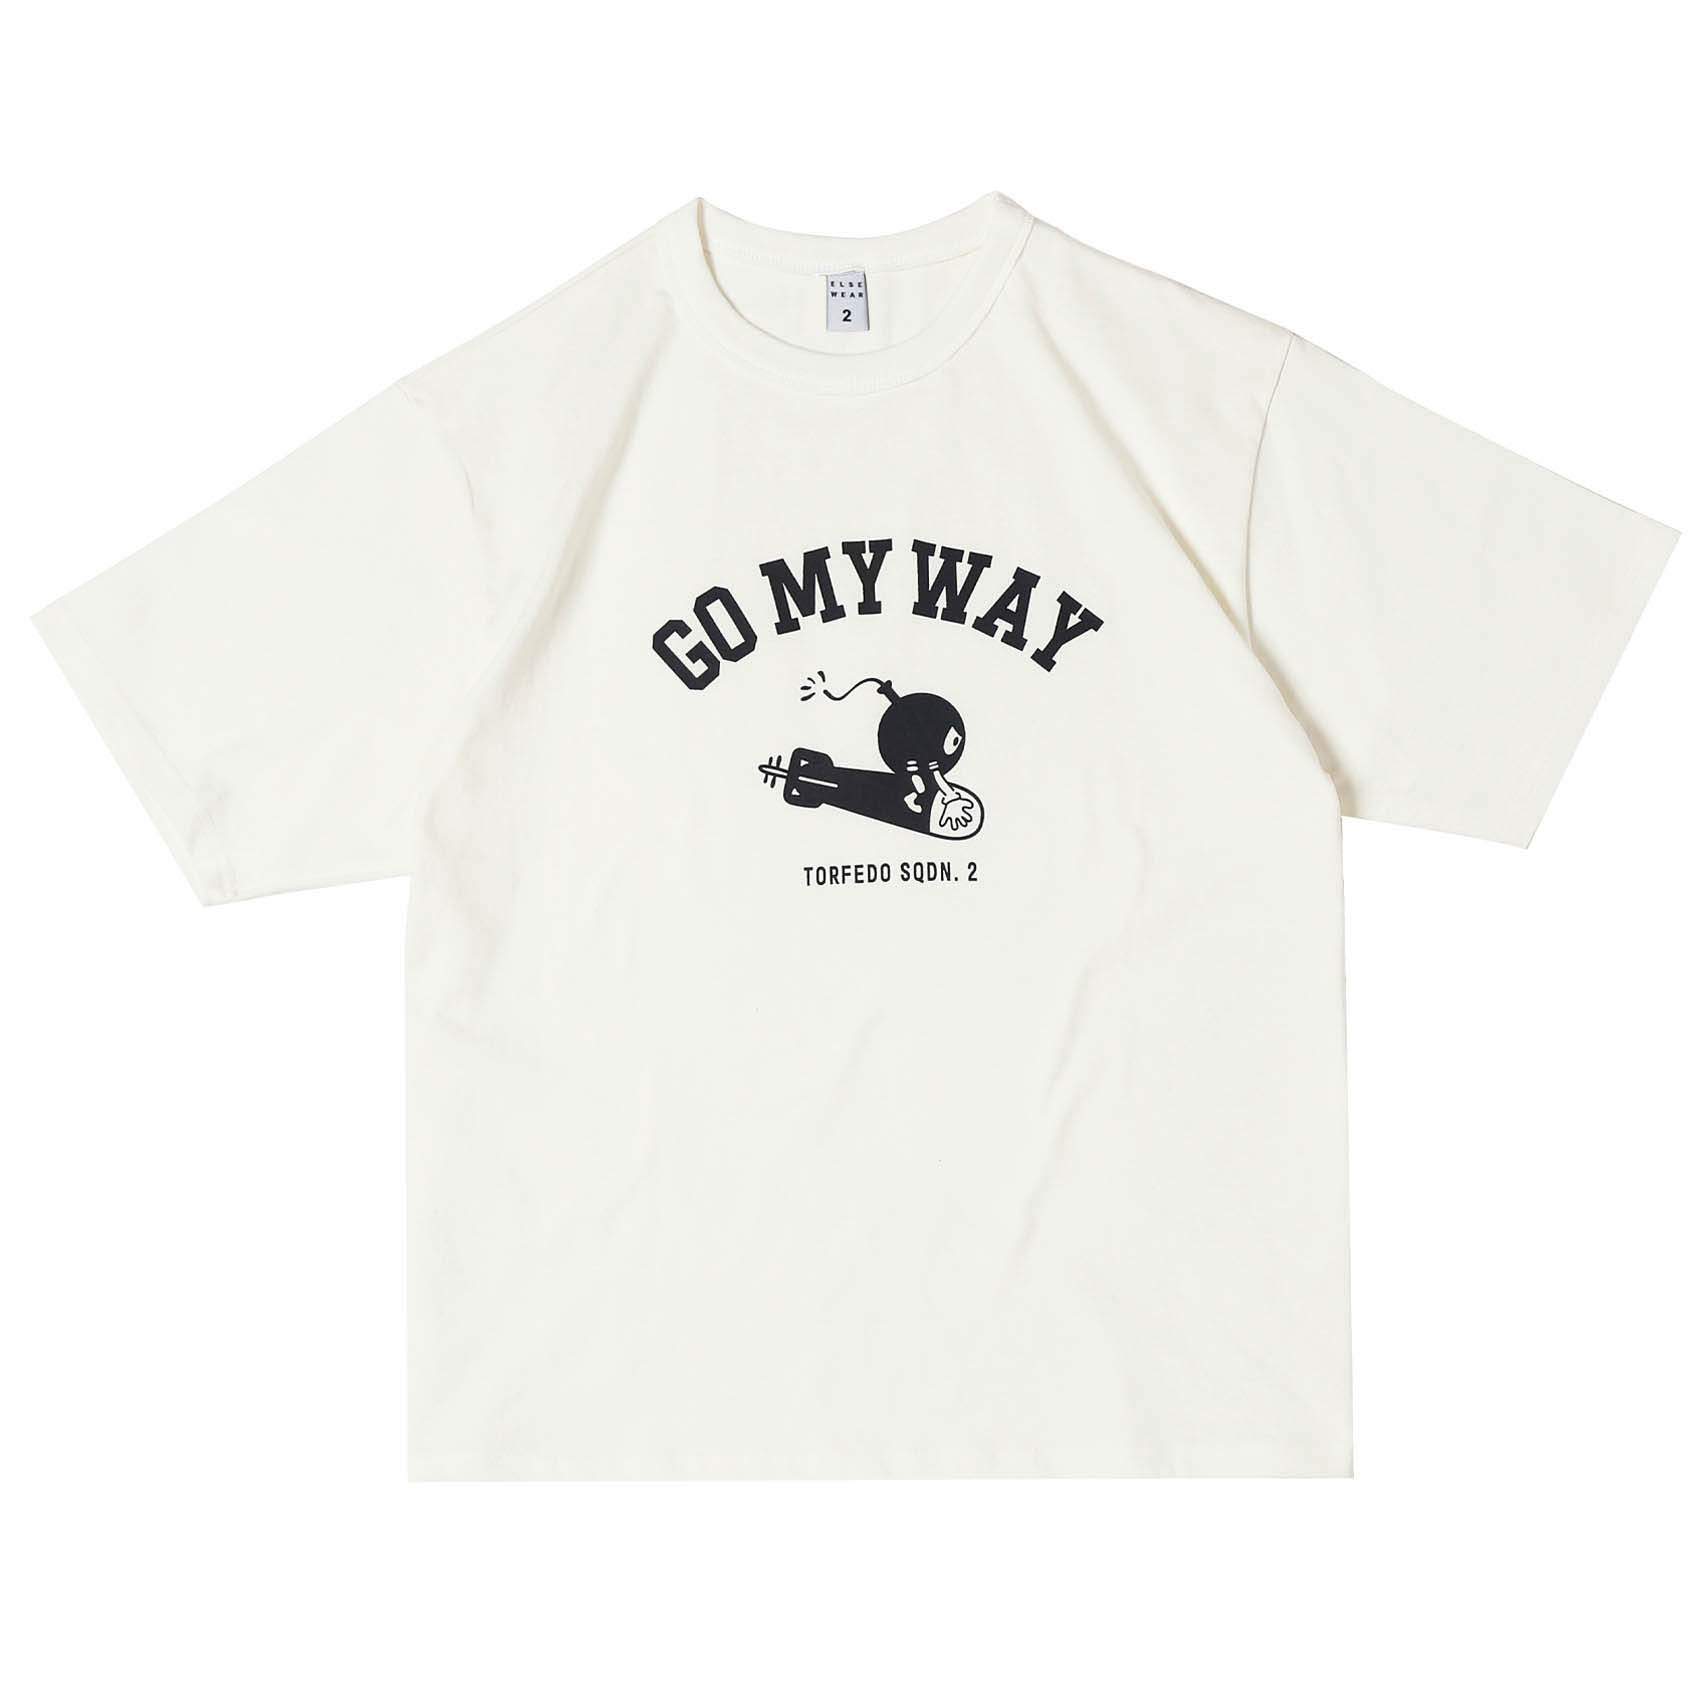 SS PRINTED TEE - GO MY WAY